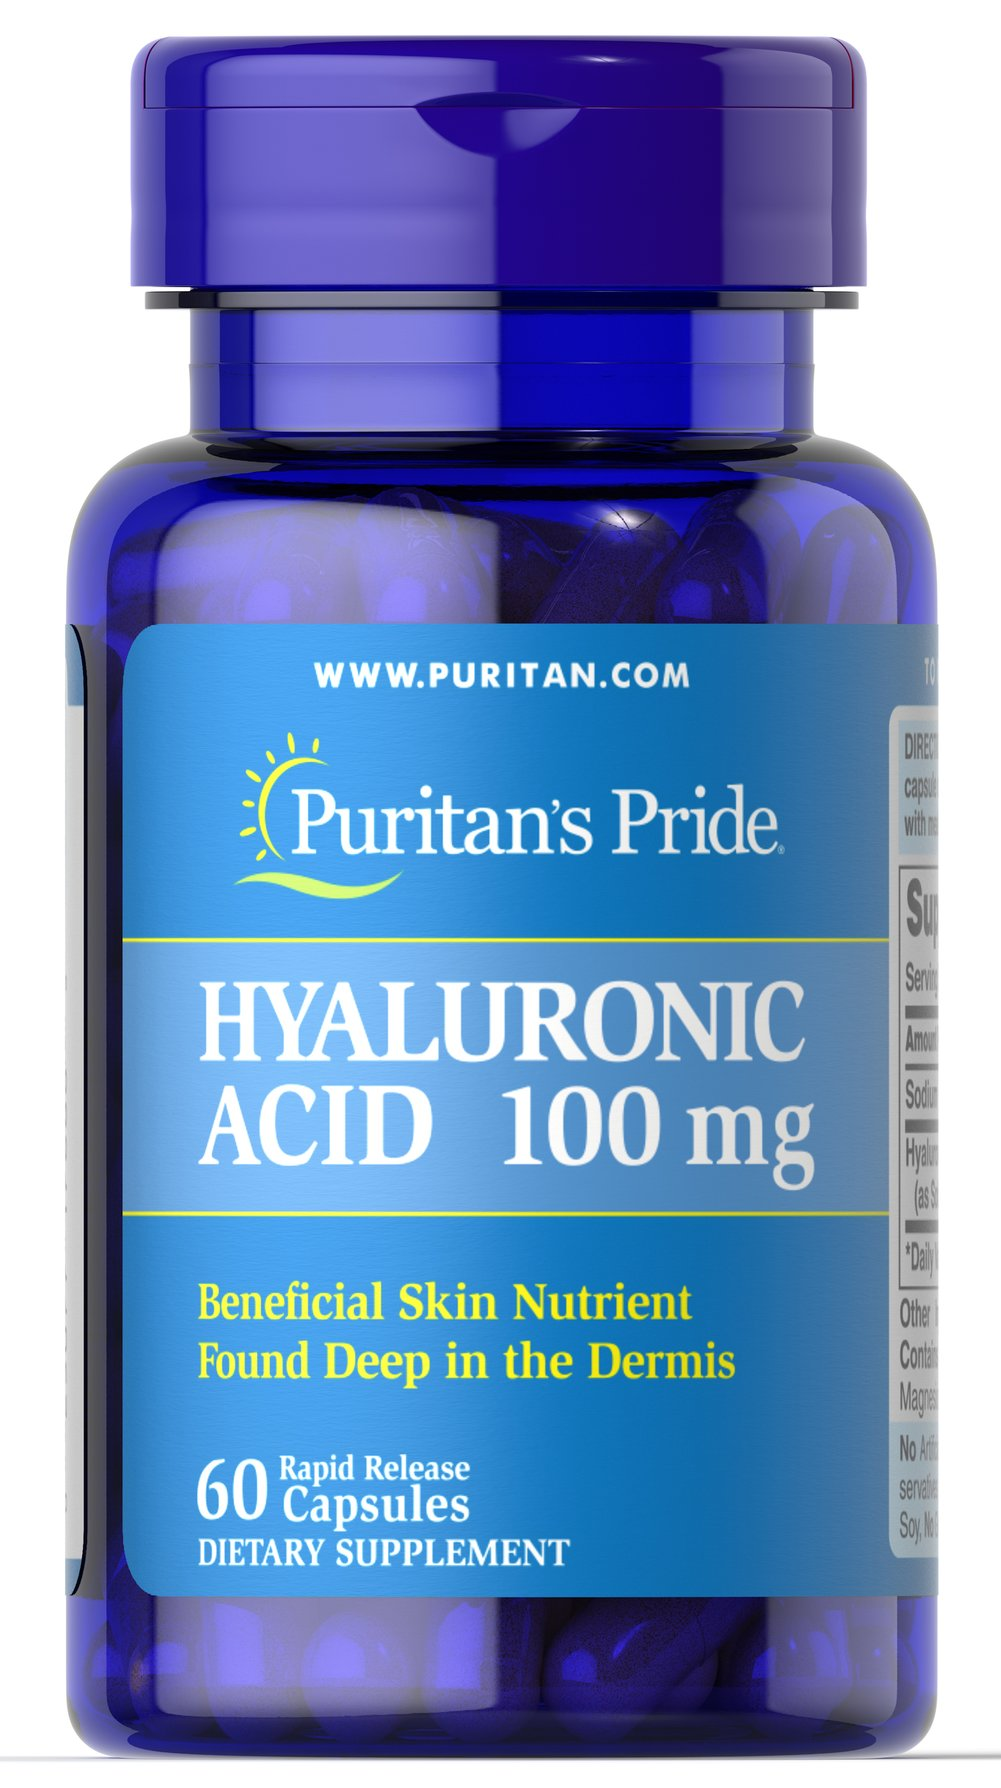 Hyaluronic Acid 100 mg  60 Capsules 100 mg $44.99